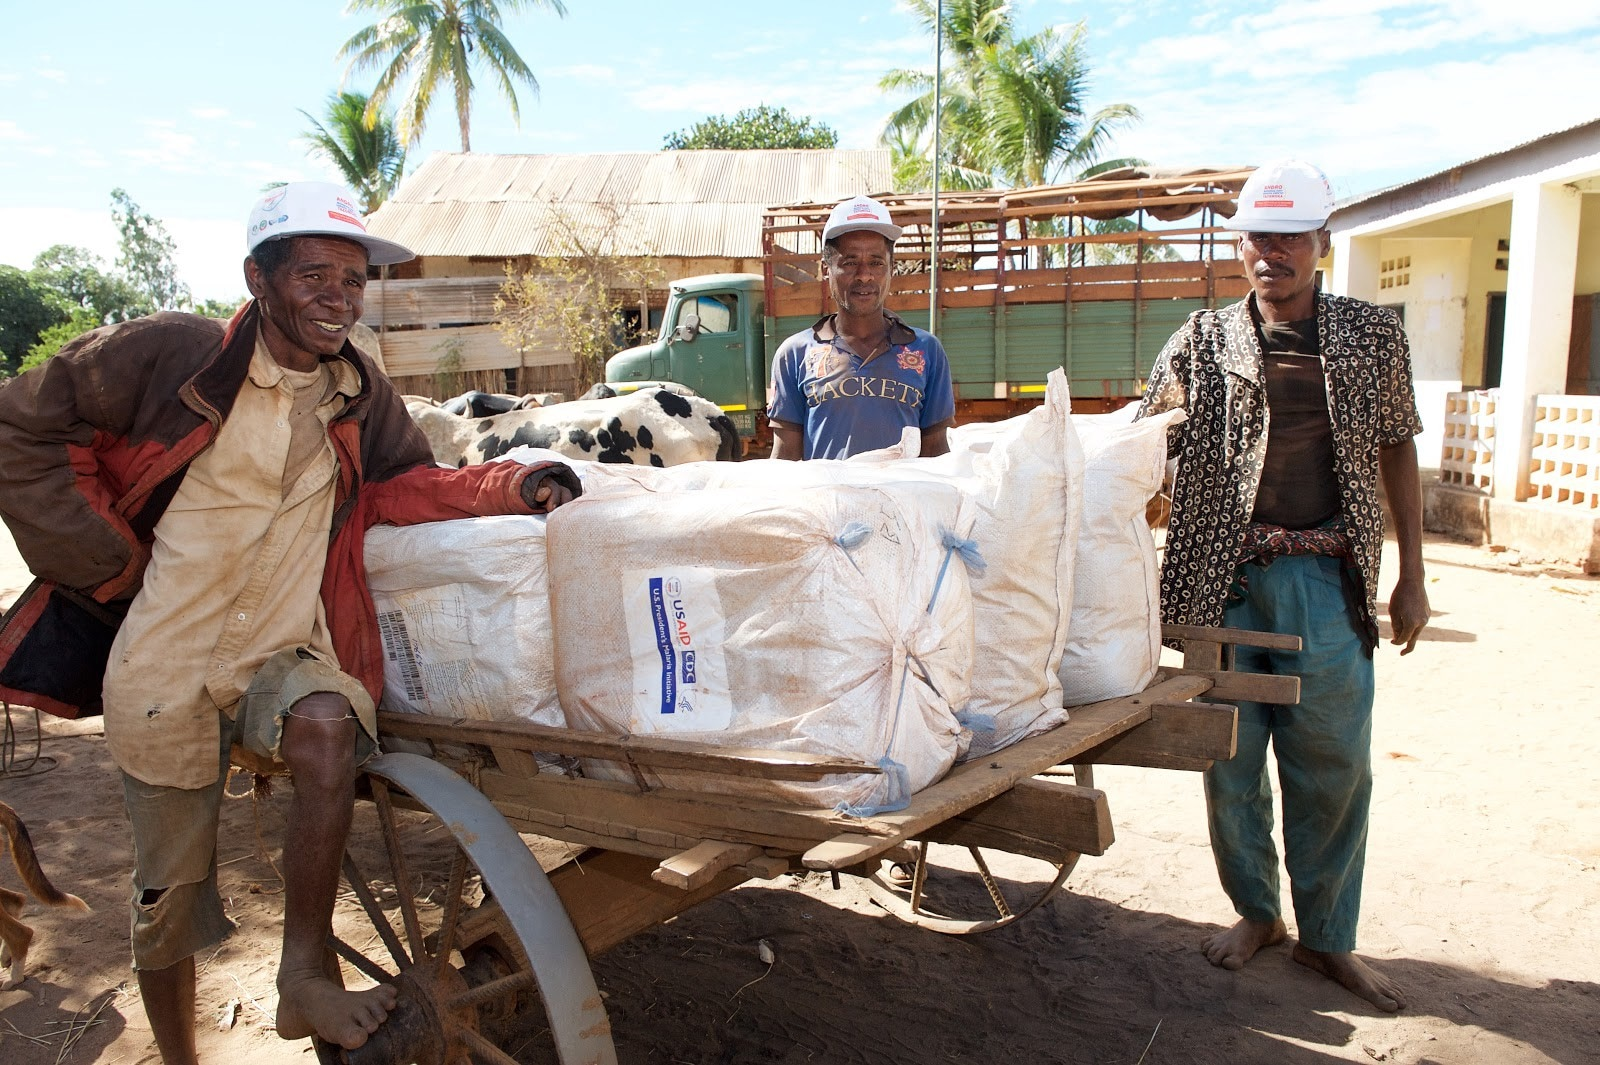 Malagasy men load malaria bed nets onto a cart in preparation for distribution. (Lan Andrian, USAID Global Health Supply Chain Program—Procurement and Supply Management)